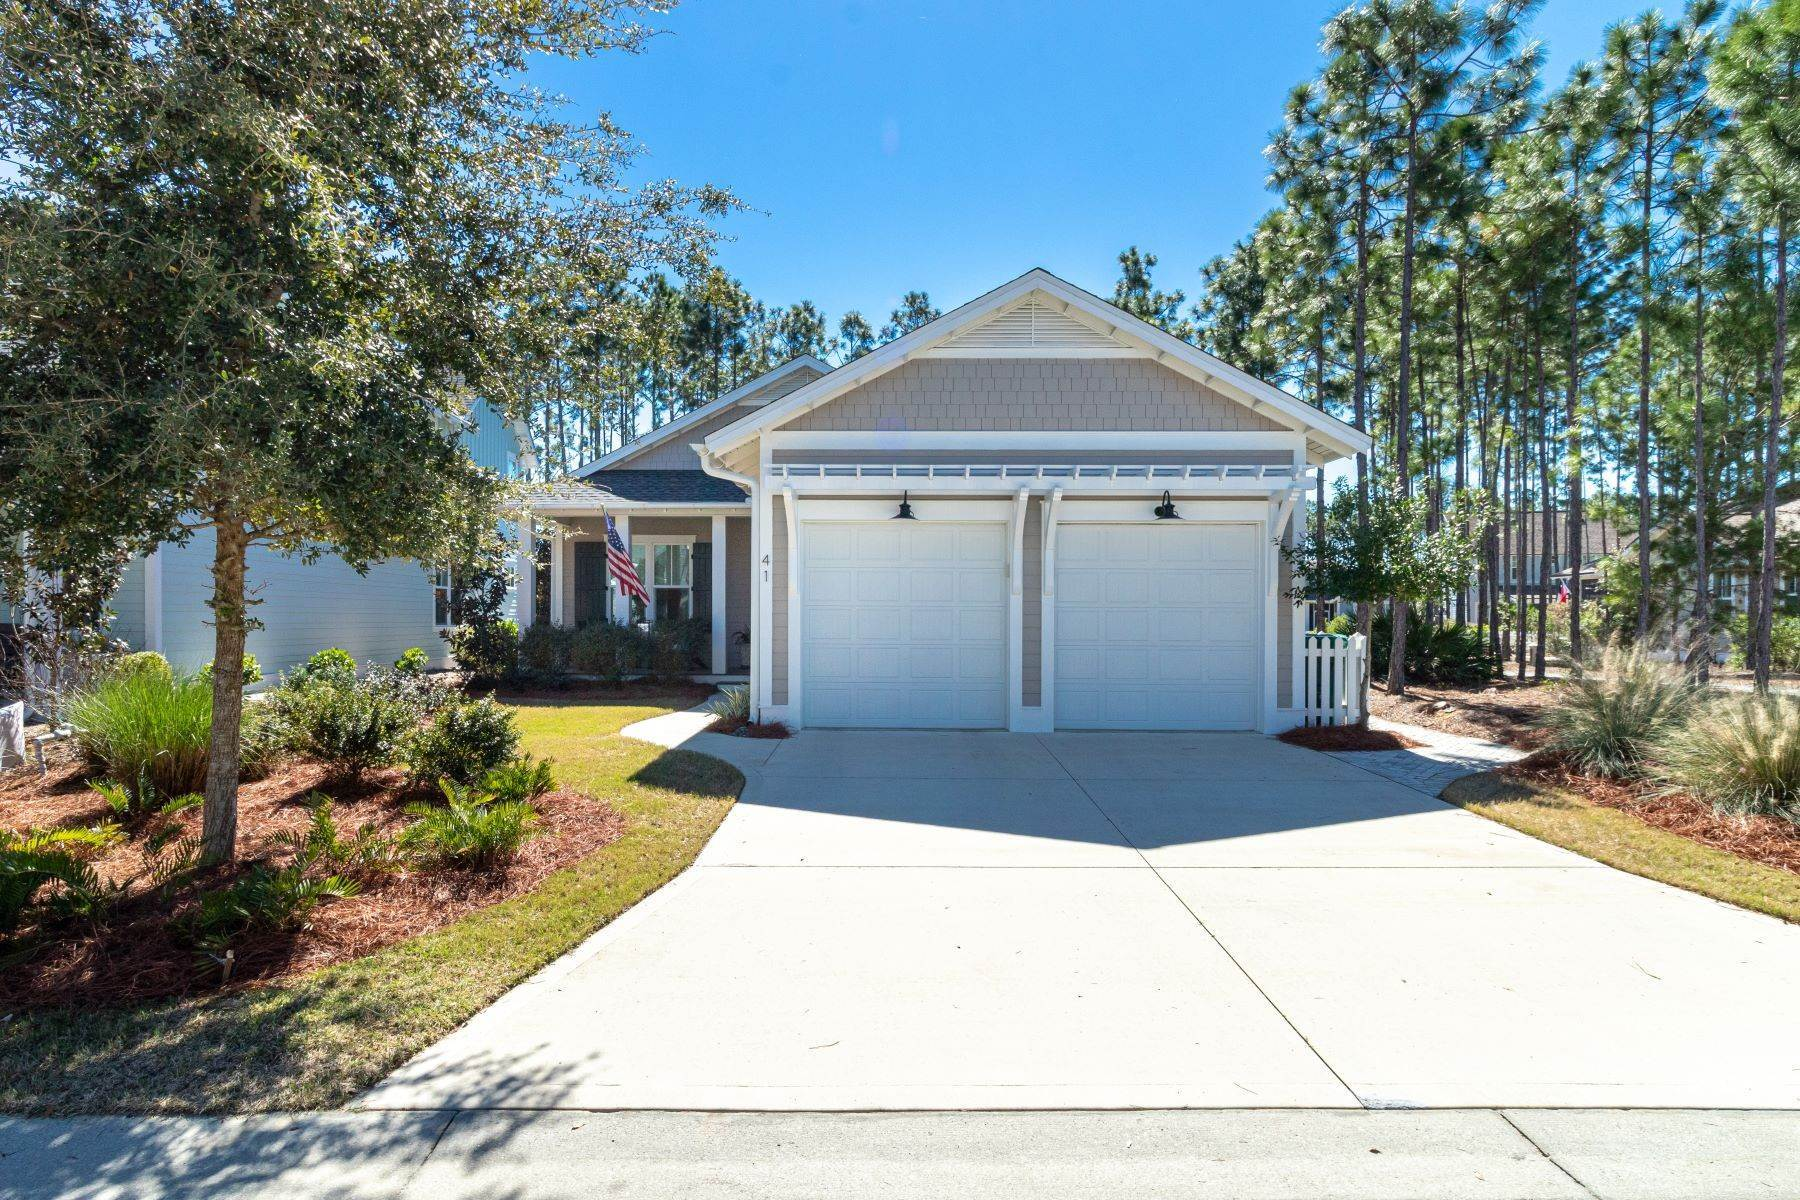 Single Family Homes for Sale at Lovely Open Concept Cottage in Watersound Origins 41 Cannonball Lane Inlet Beach, Florida 32461 United States